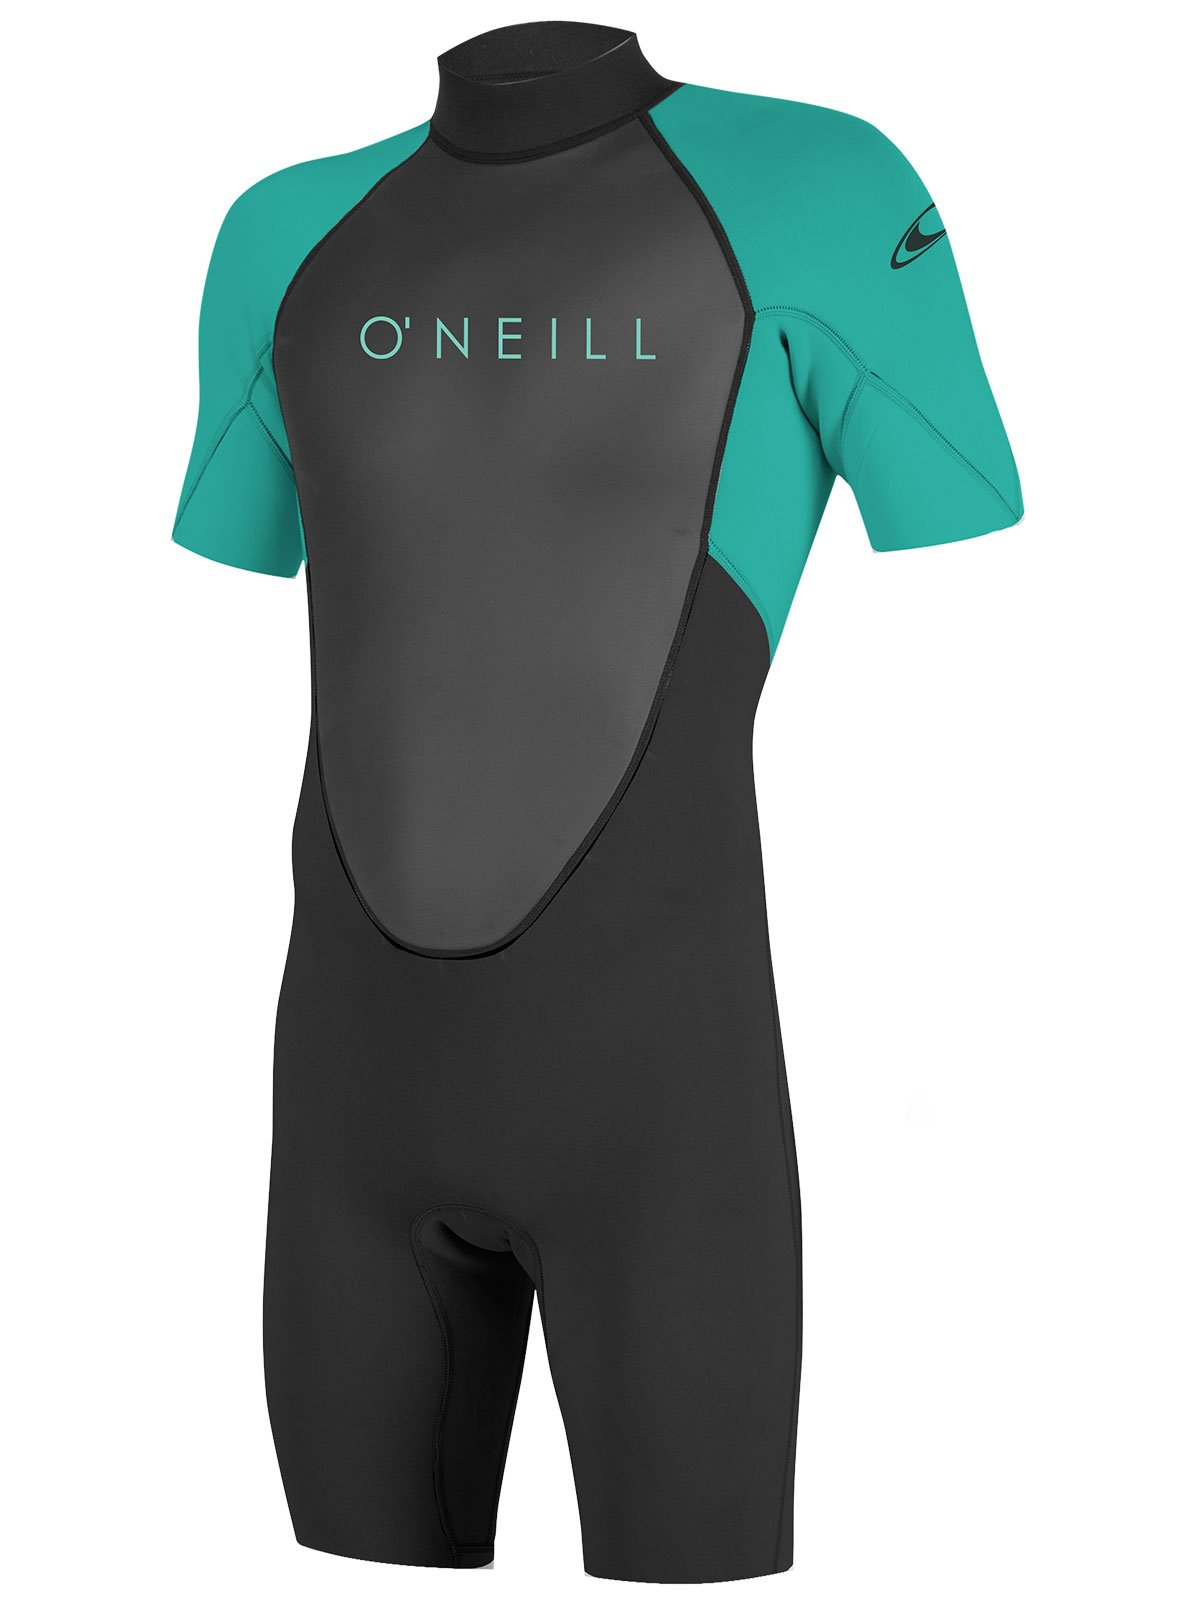 O'Neill Youth Reactor-2 2mm Back Zip Short Sleeve Spring Wetsuit, Black/Aqua, 10 by O'Neill Wetsuits